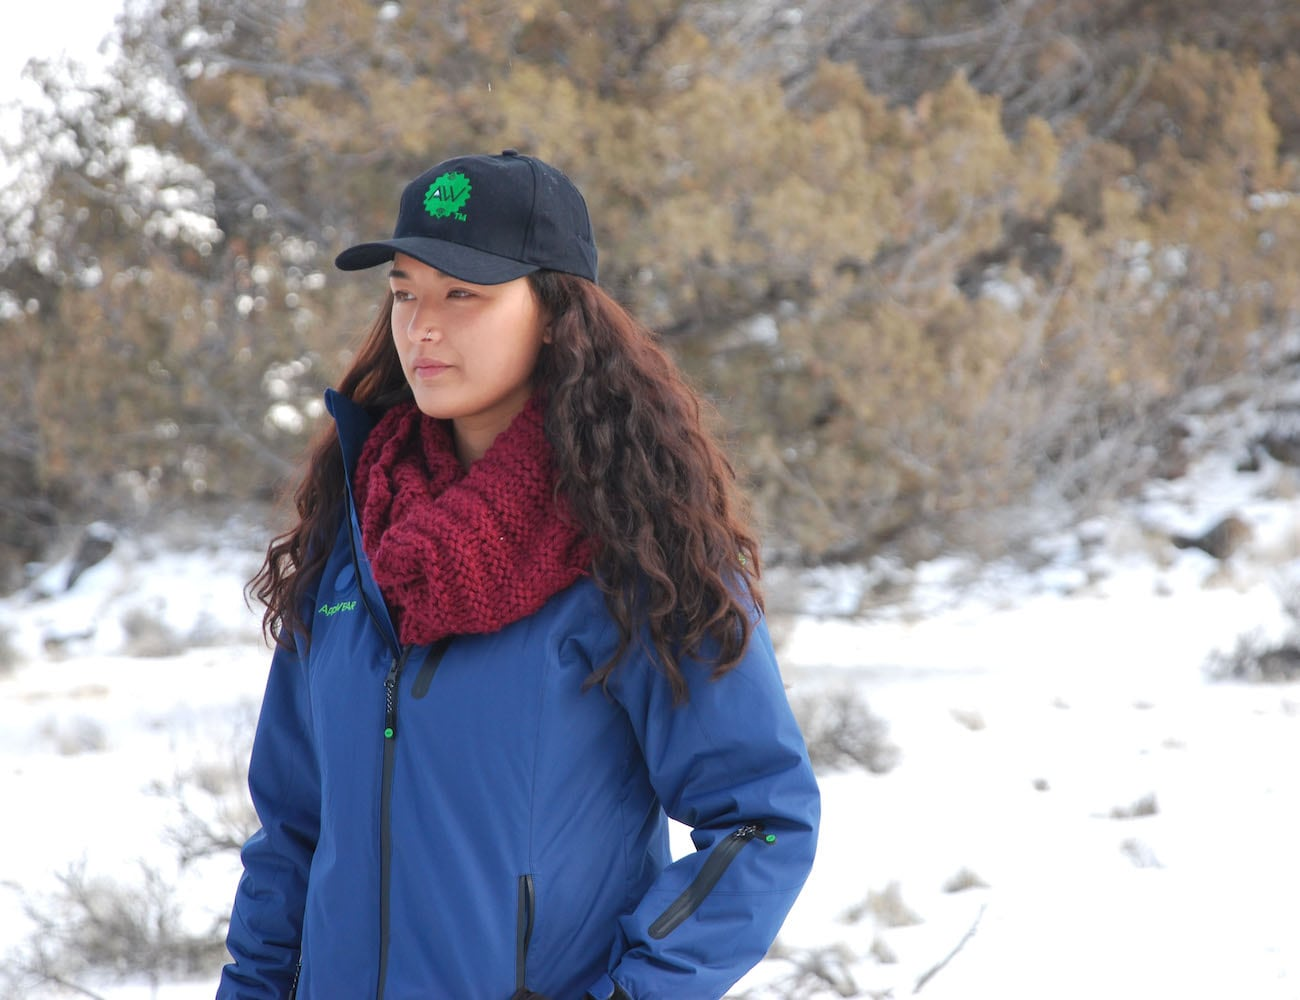 AppWEAR Warming Tracker Jacket and Vest keeps you warm and tracks your activities